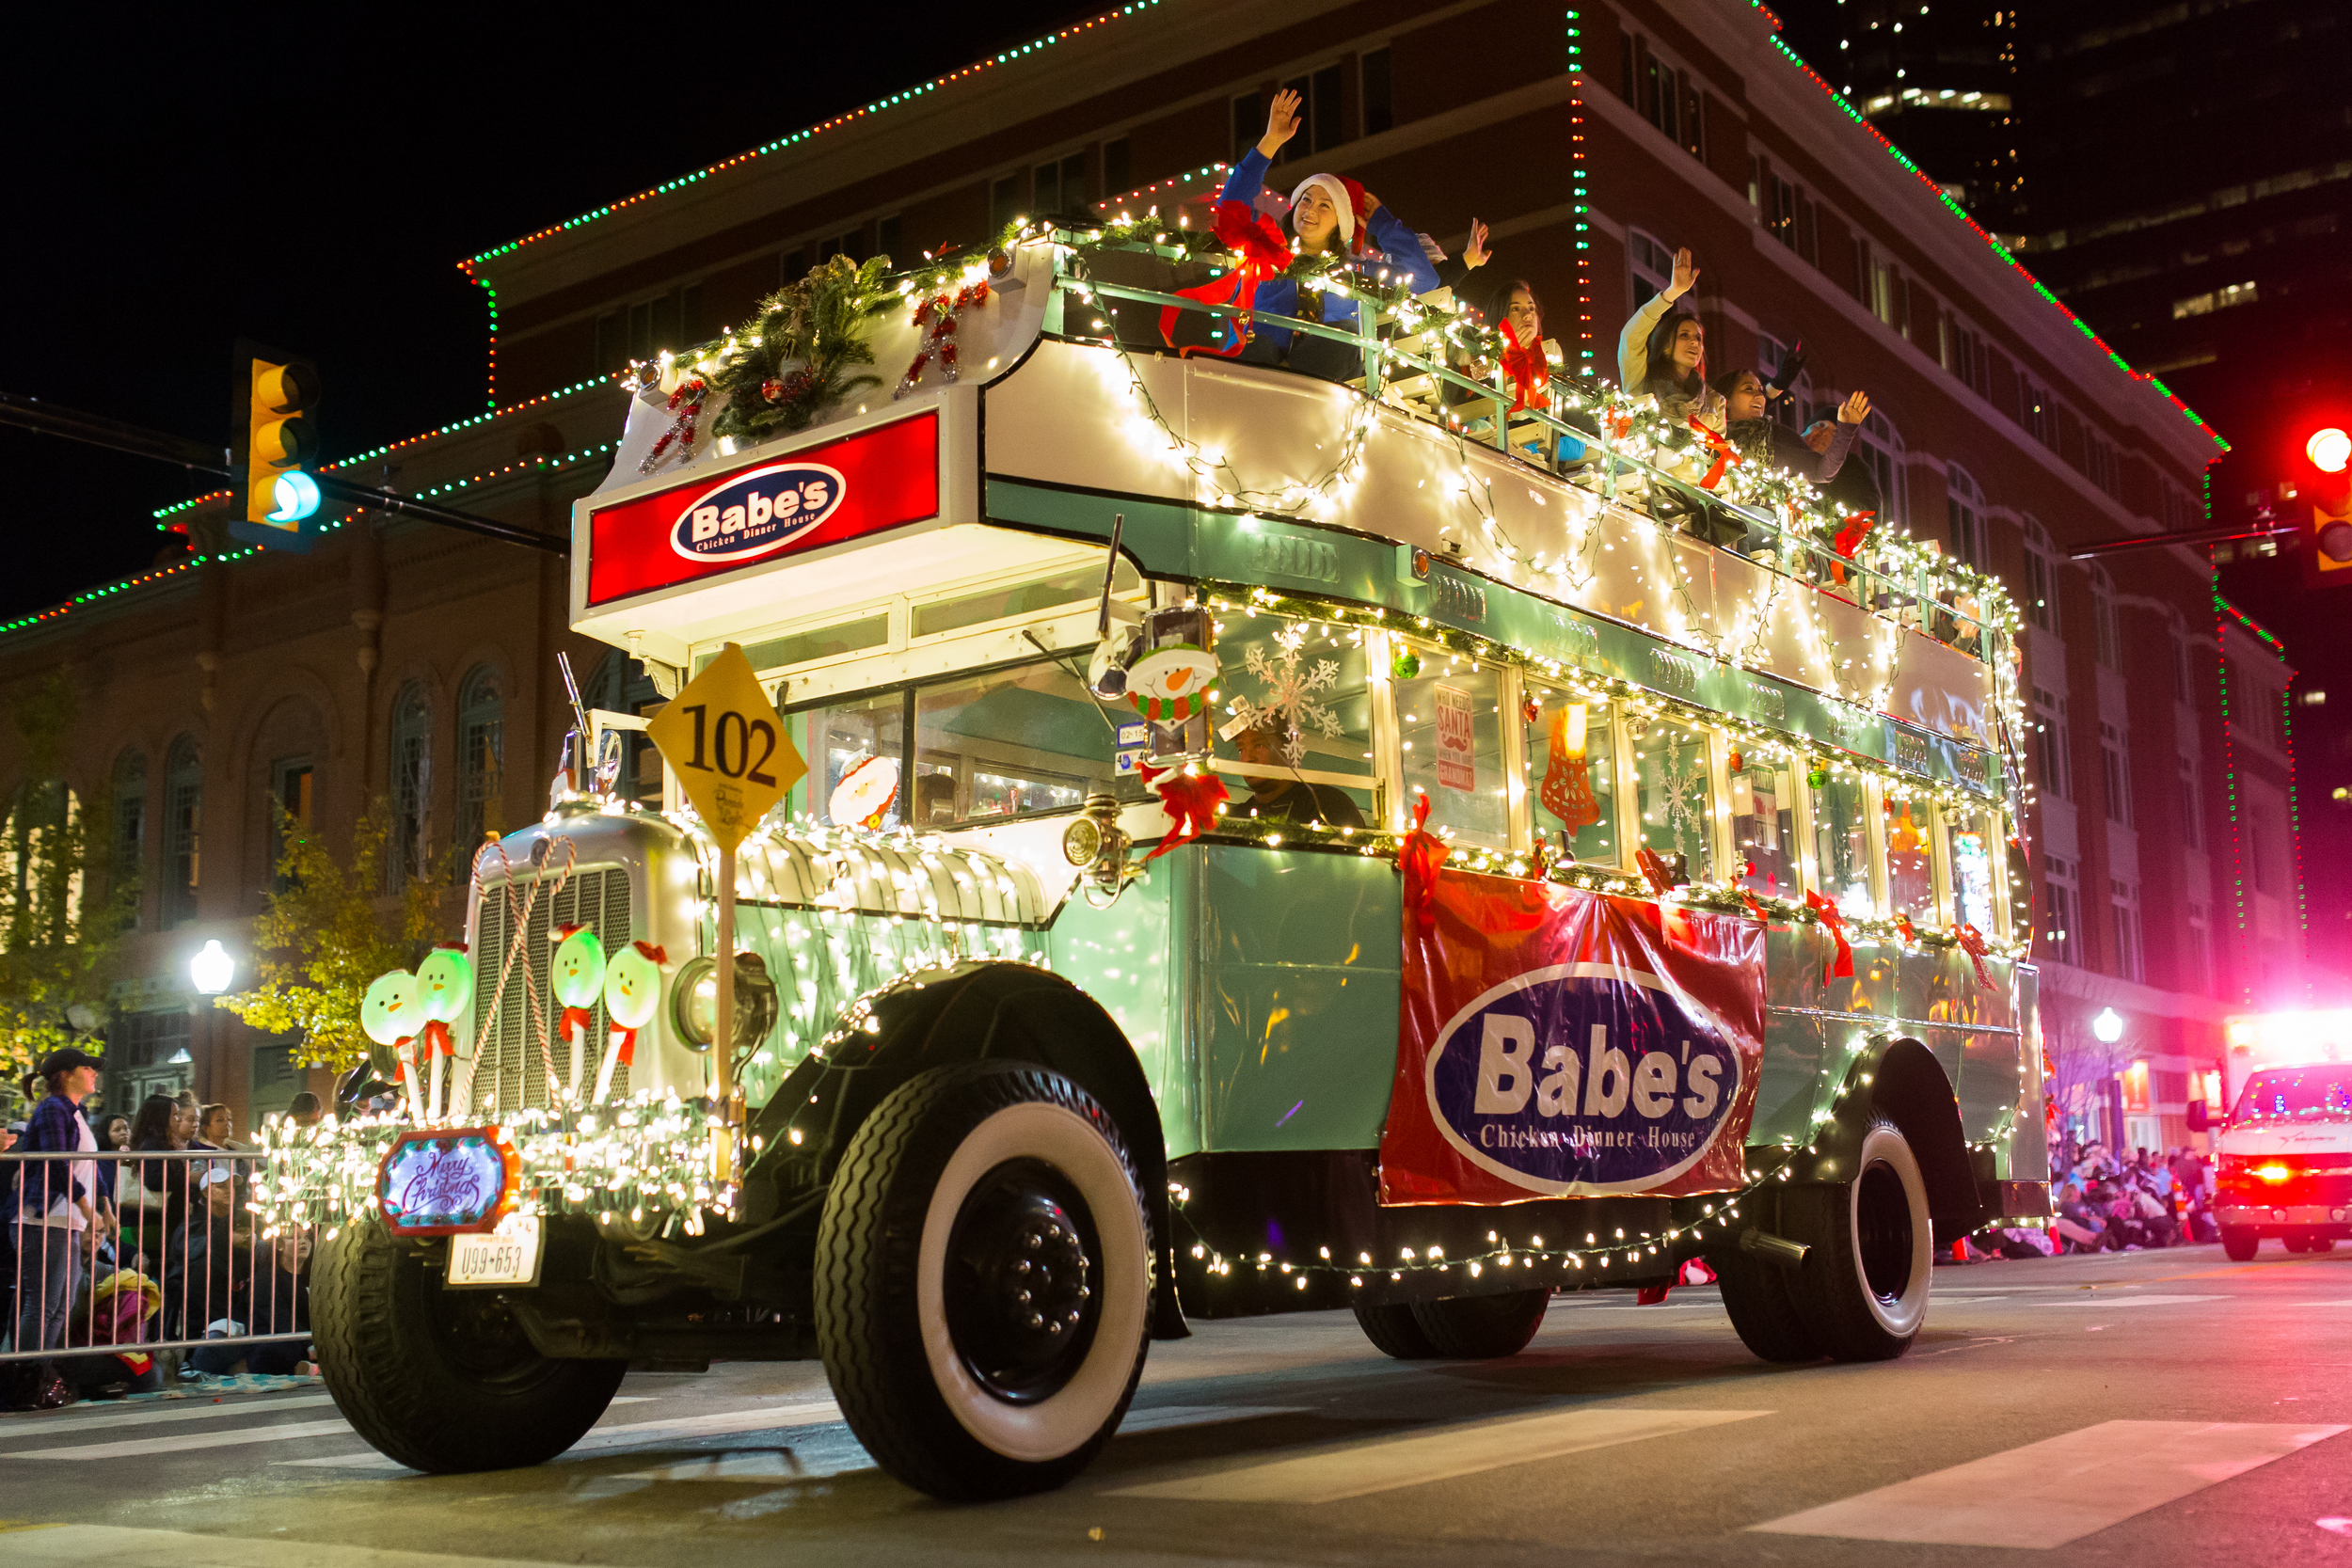 2014 XTO Energy Parade of Lights _ Babes Chicken House Dinner-4#F197.jpg